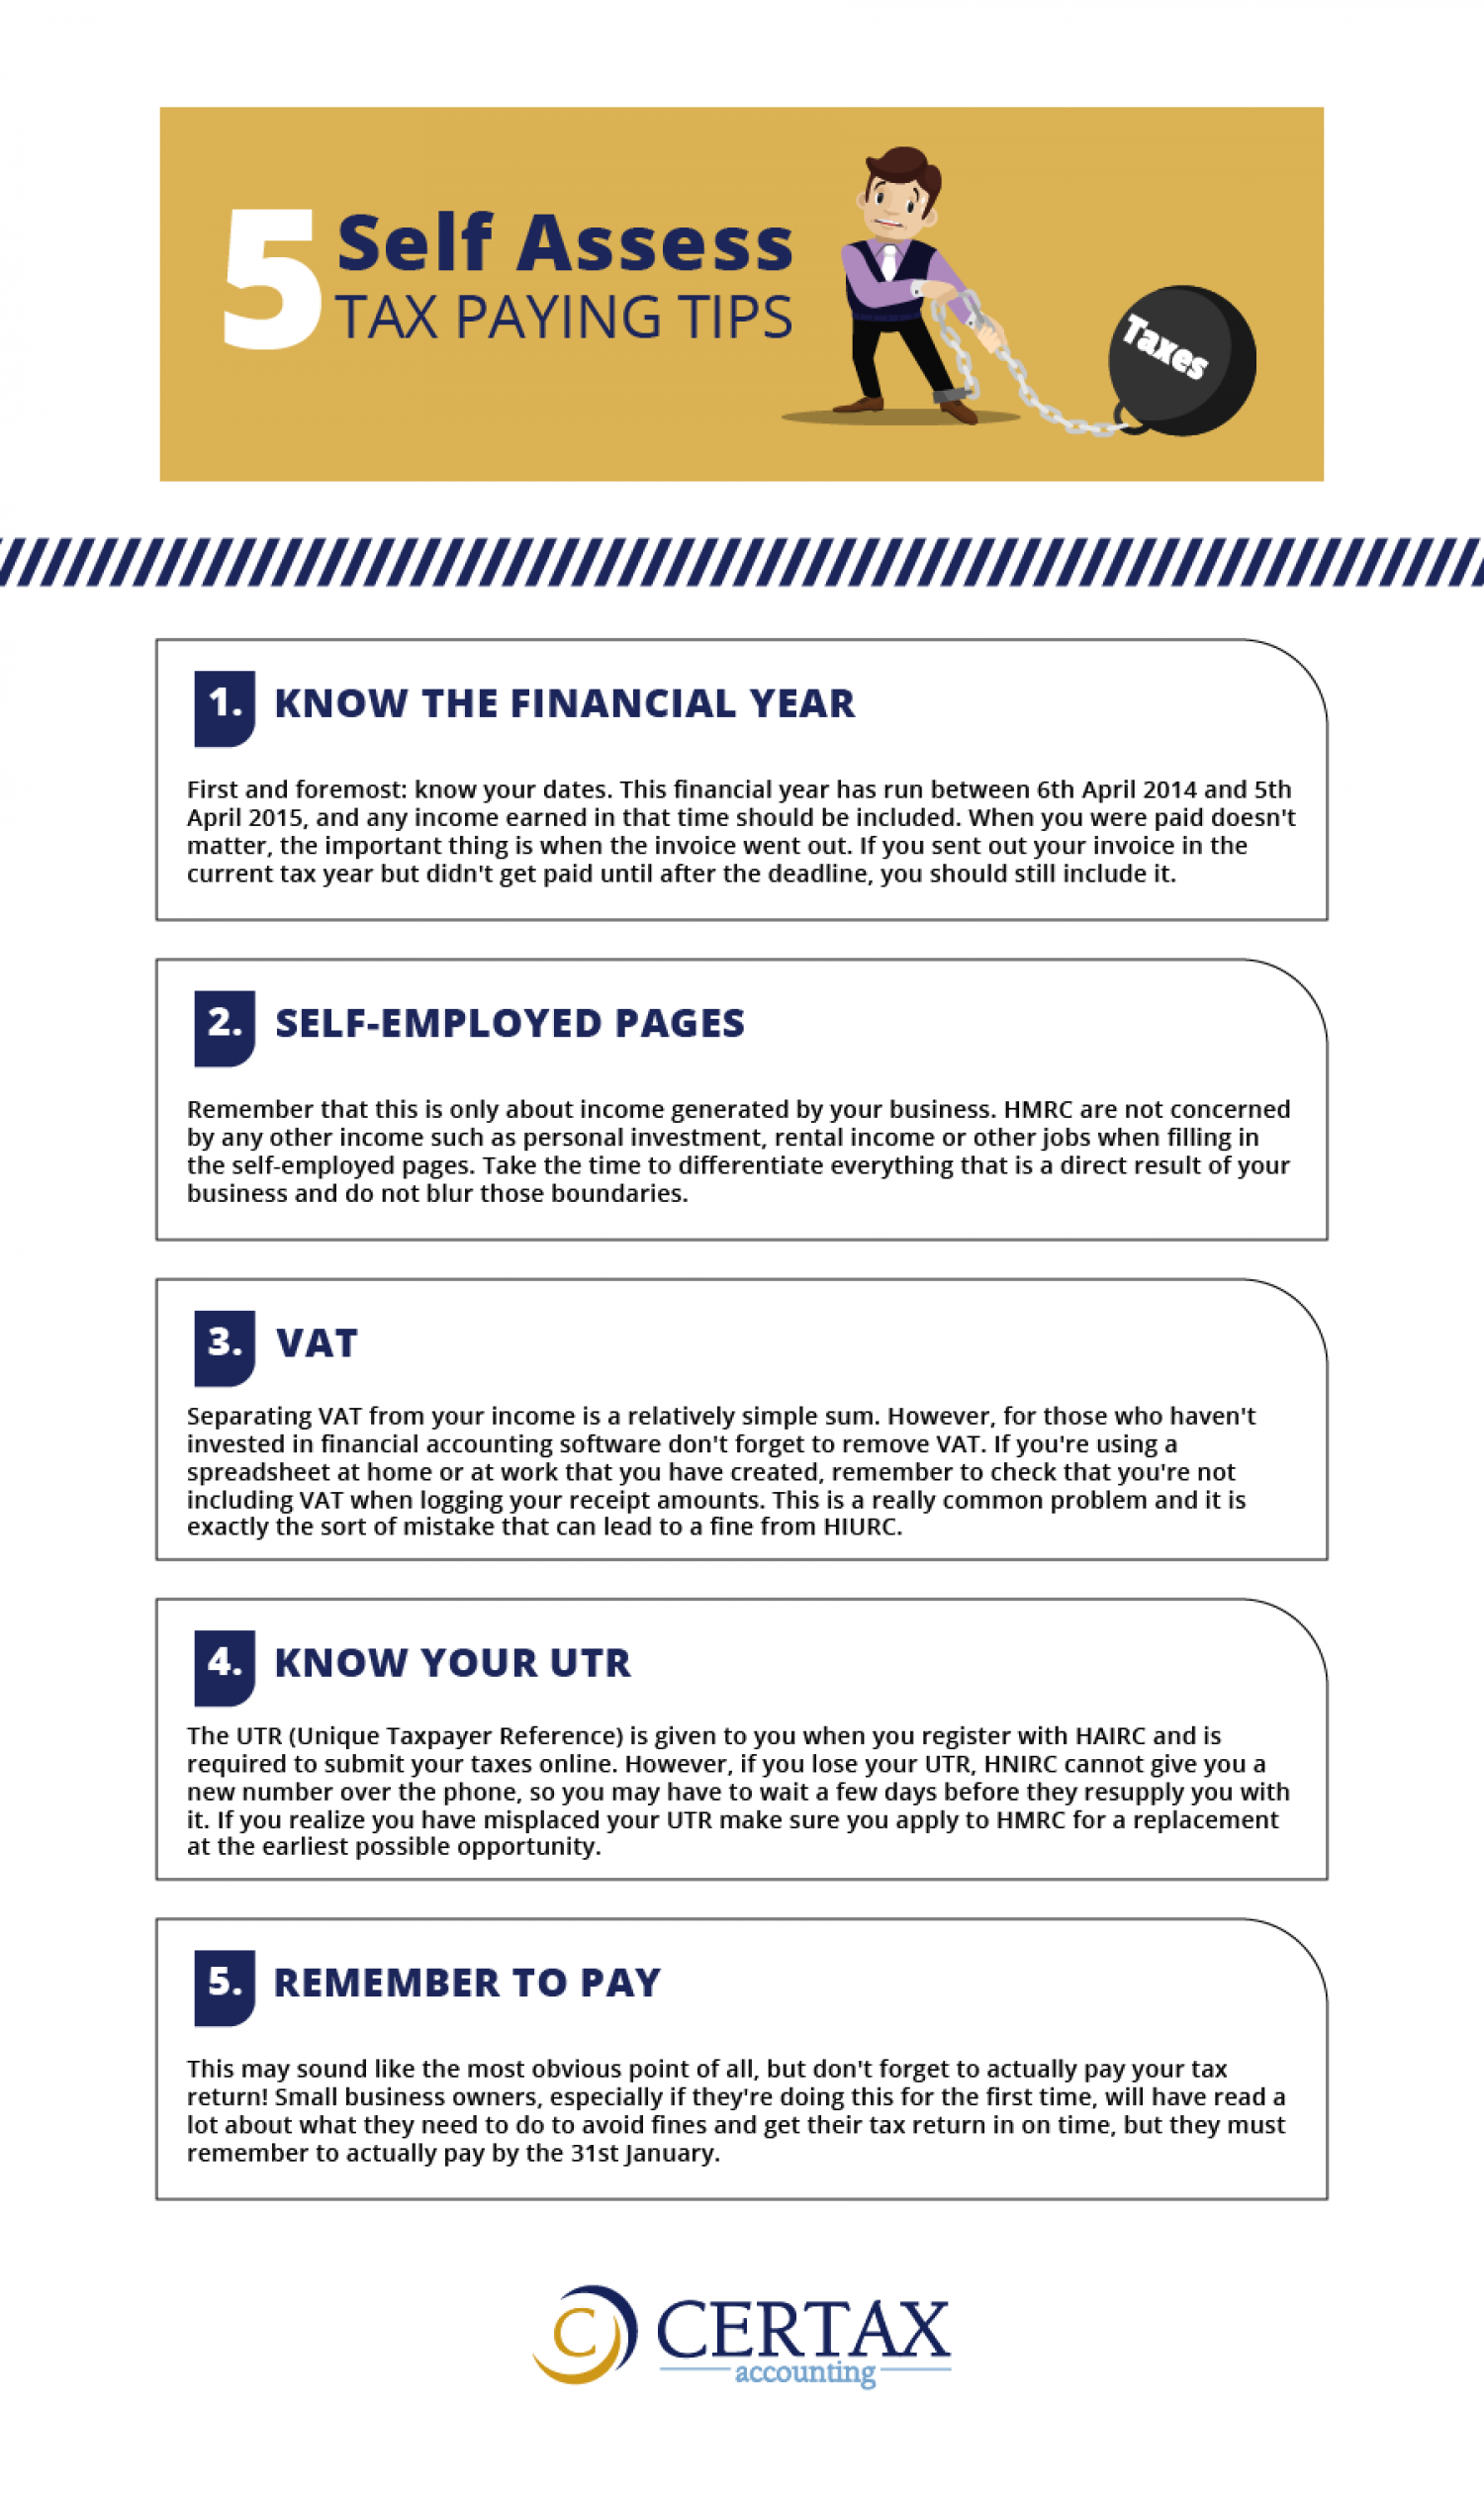 5  Self Assess Tax Paying Tips Infographic